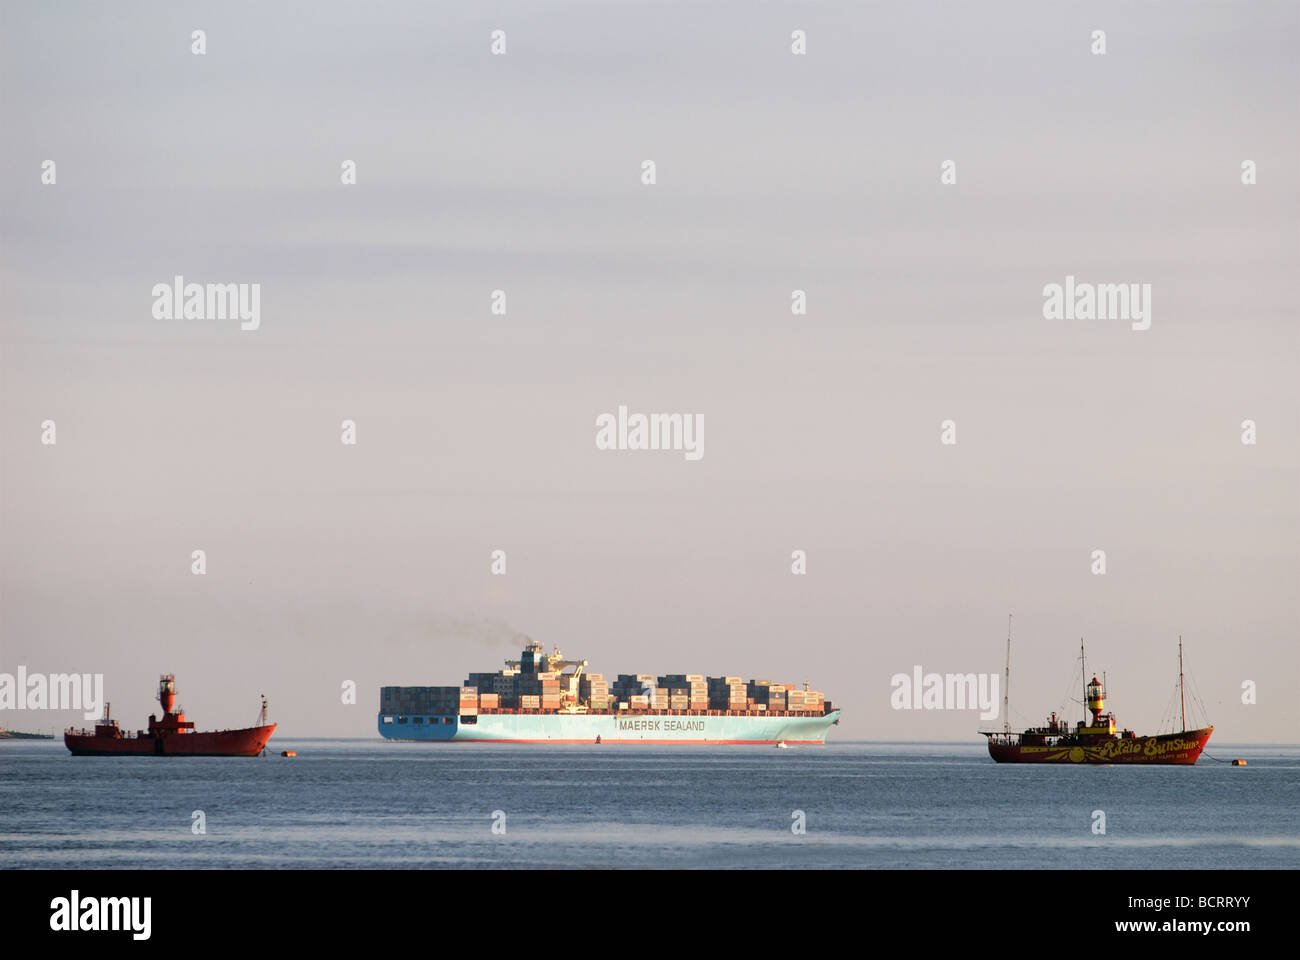 Maersk Sealand container ship, Felixstowe, Suffolk, UK. - Stock Image